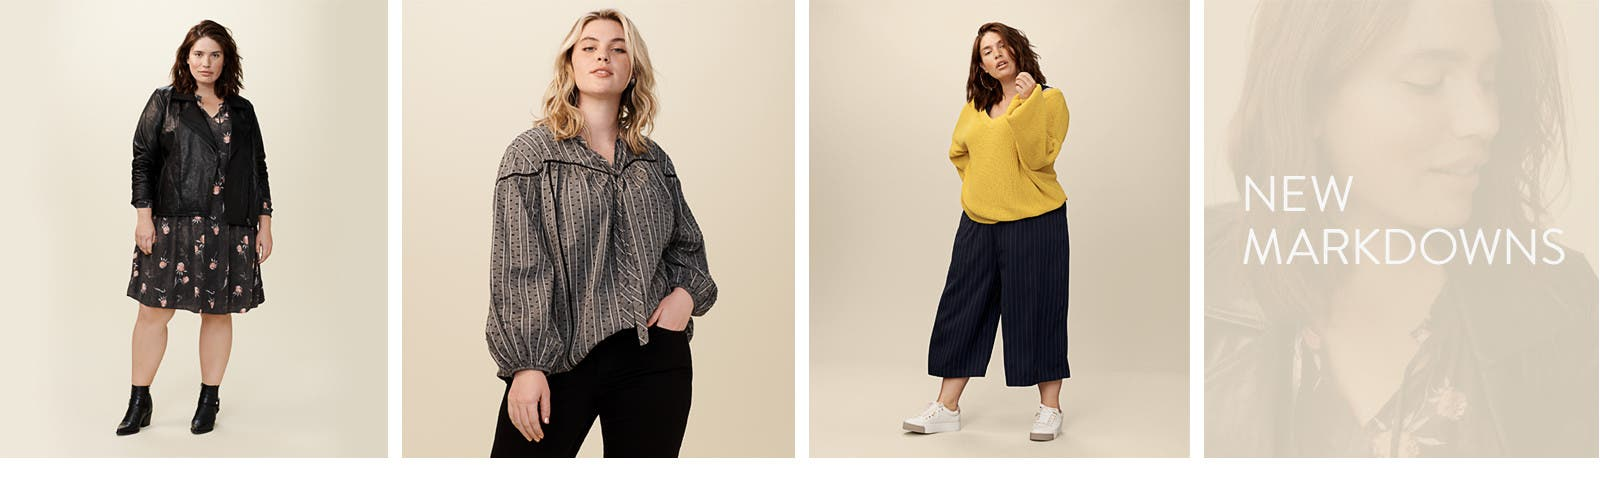 Wedding Guest Plus Size Clothing For Women | Nordstrom